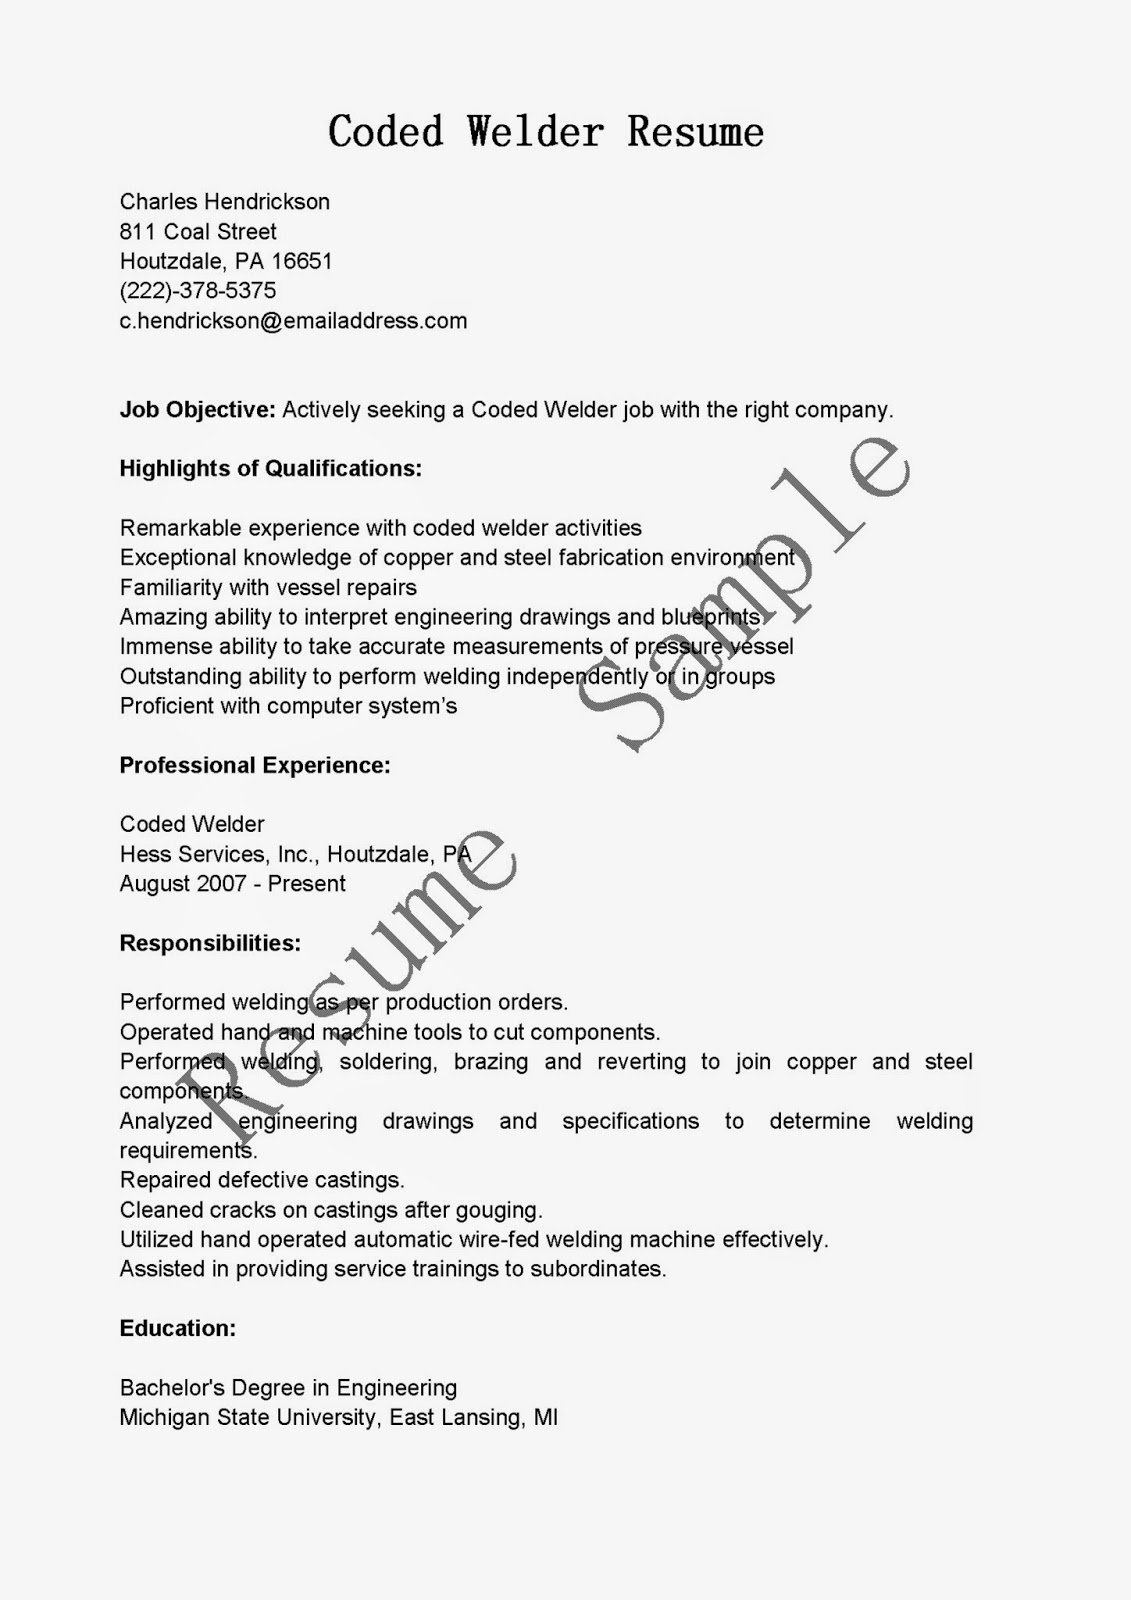 Coded Welder Cover Letter Code Design For Dependable Systems